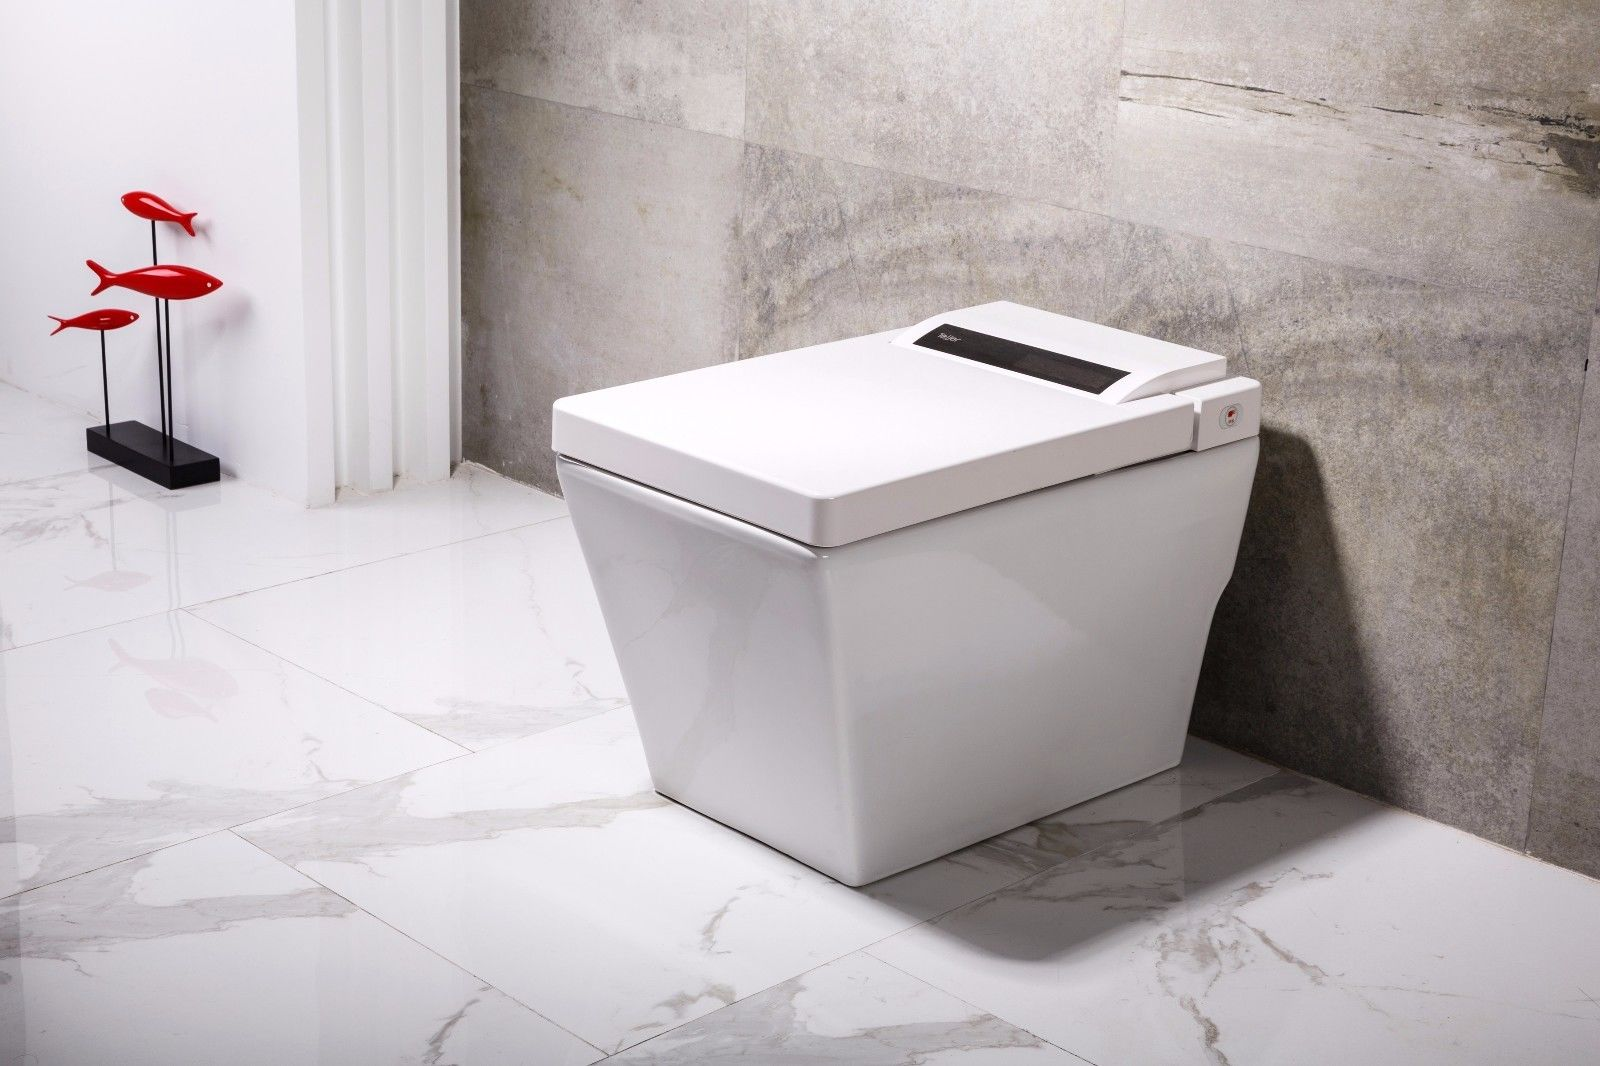 Dyconn Faucet Aqua Tankless All In One Combo Bidet Smart Toilet Luxor Essential Kitchen And Bath Depot